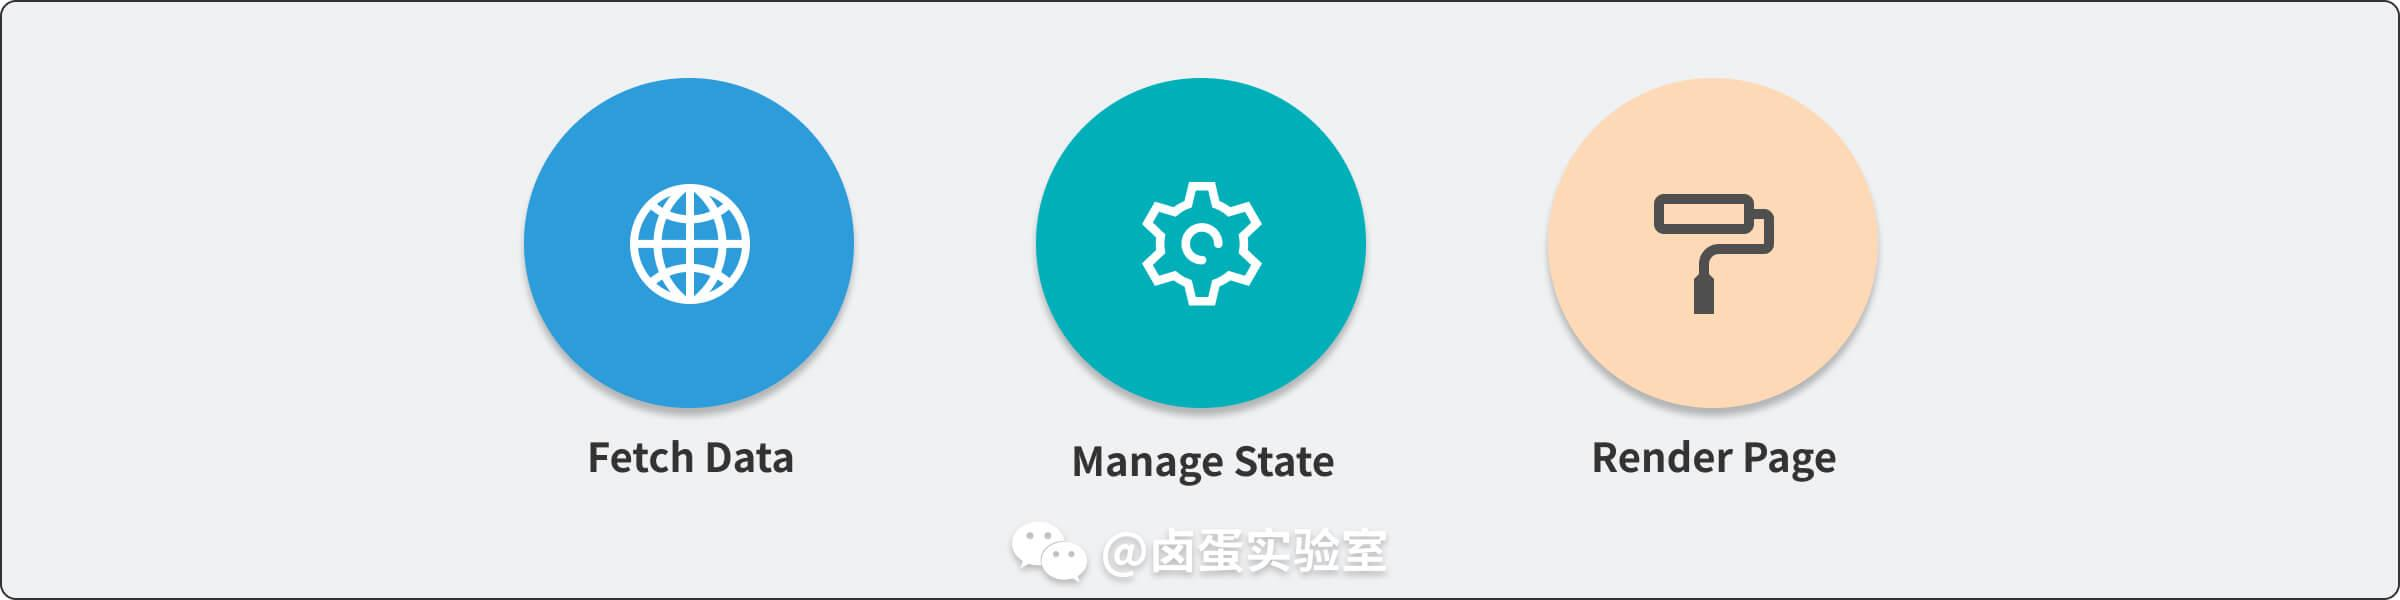 Fetch Data、Manage State、Render Page